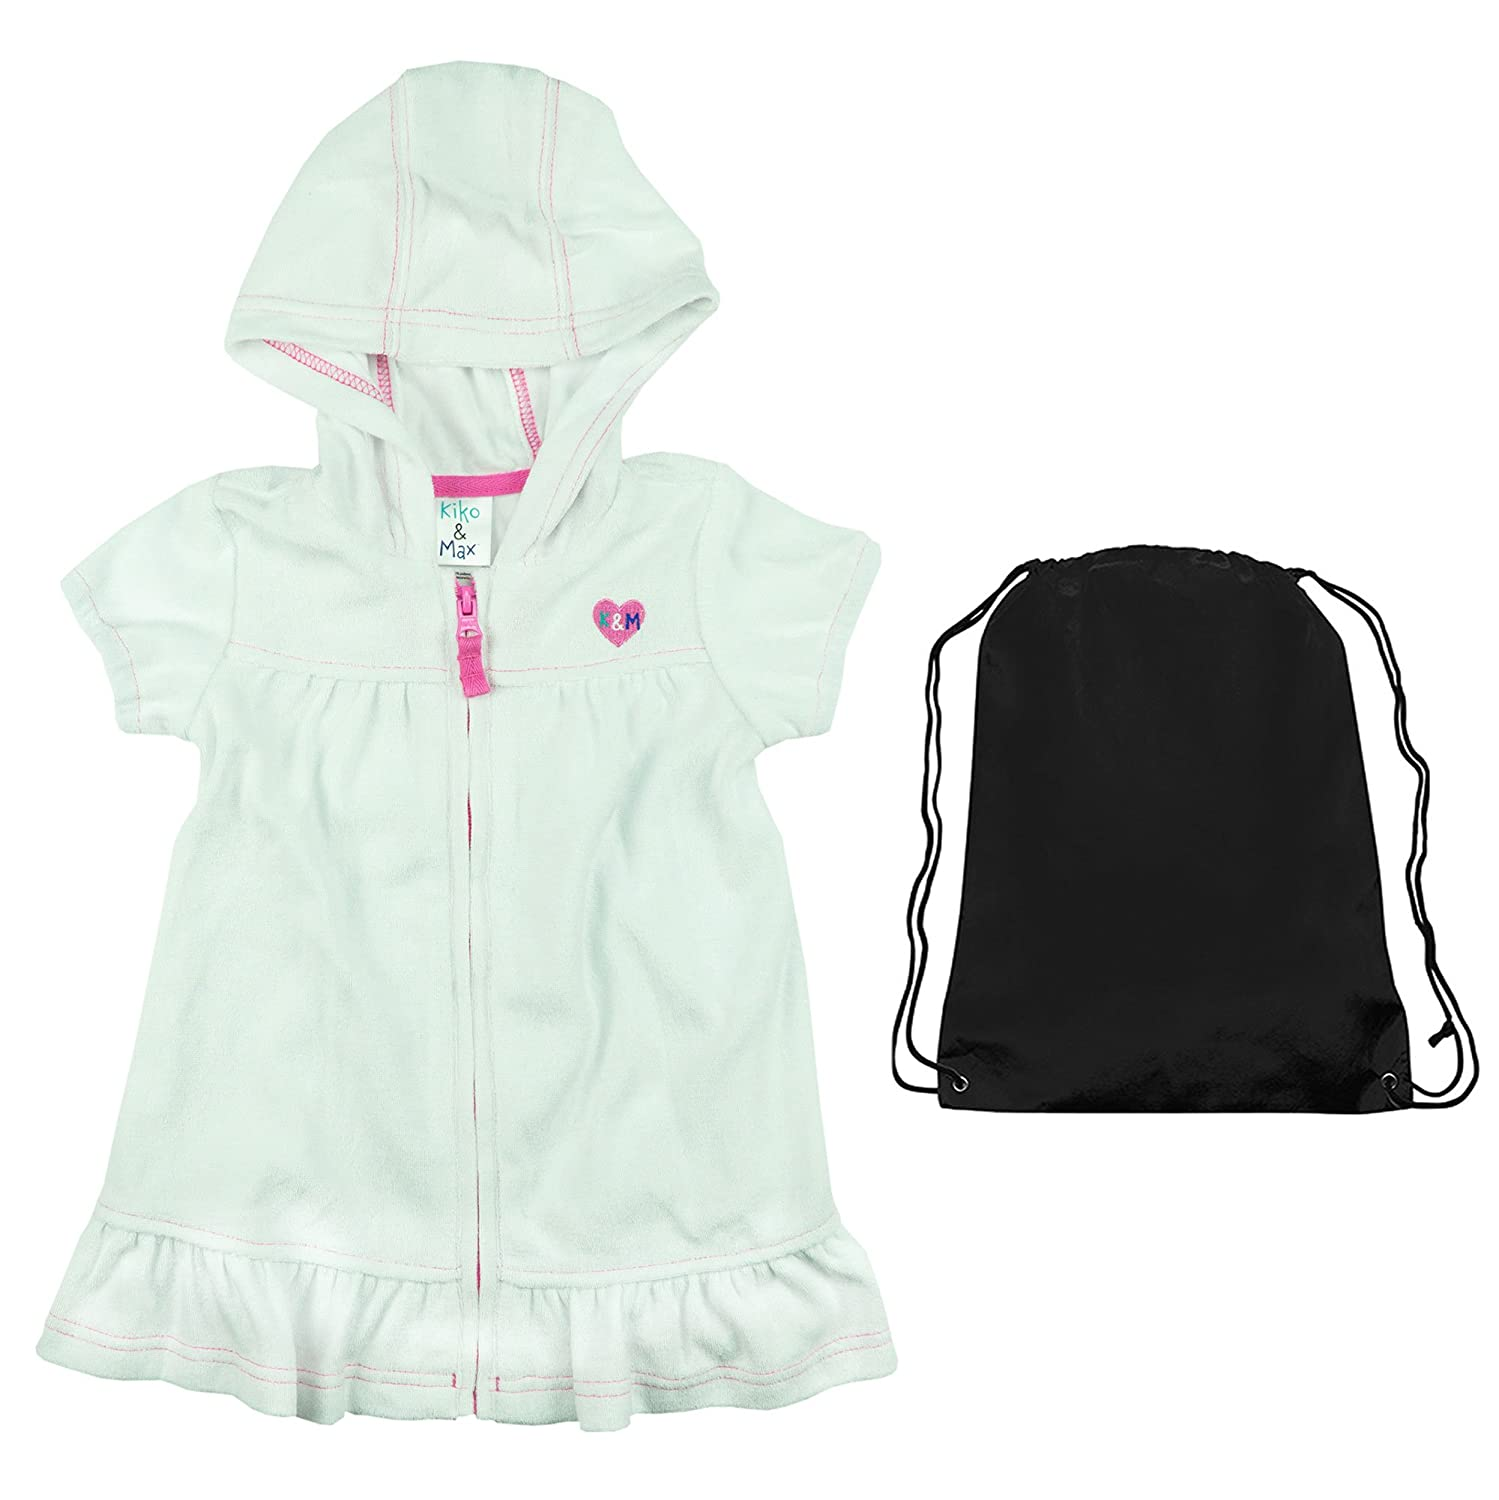 7e9c6f945d2c3 Amazon.com: Kiko & Max Infant Girls Swimwear Terry Beach Cover Up White  with Beach Bag 24 Months: Clothing